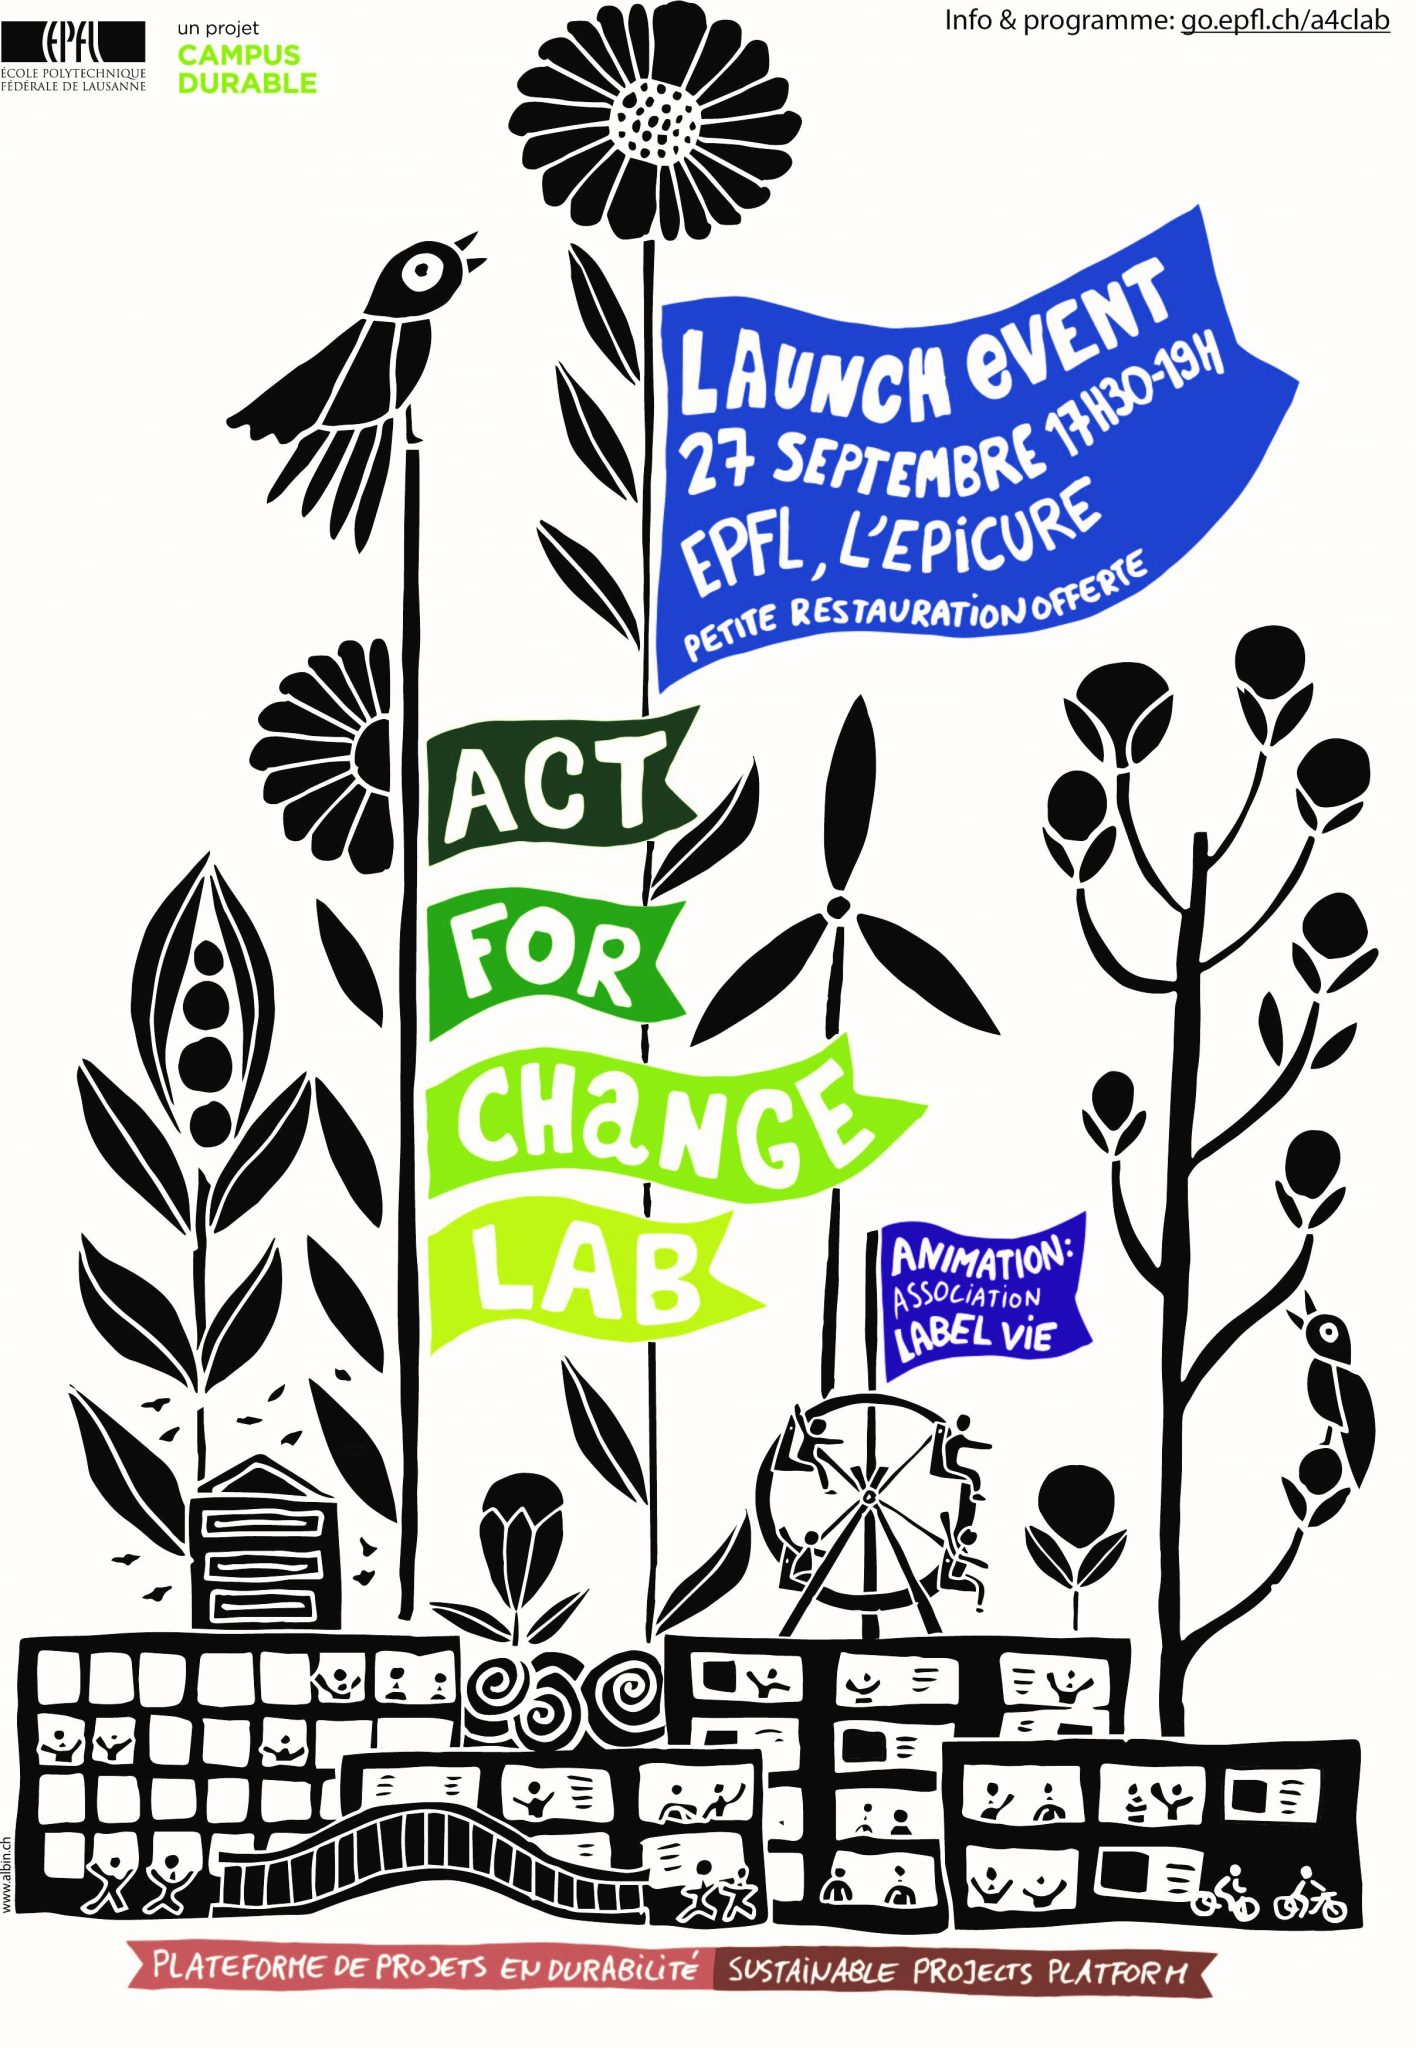 Act for change lab launch devent